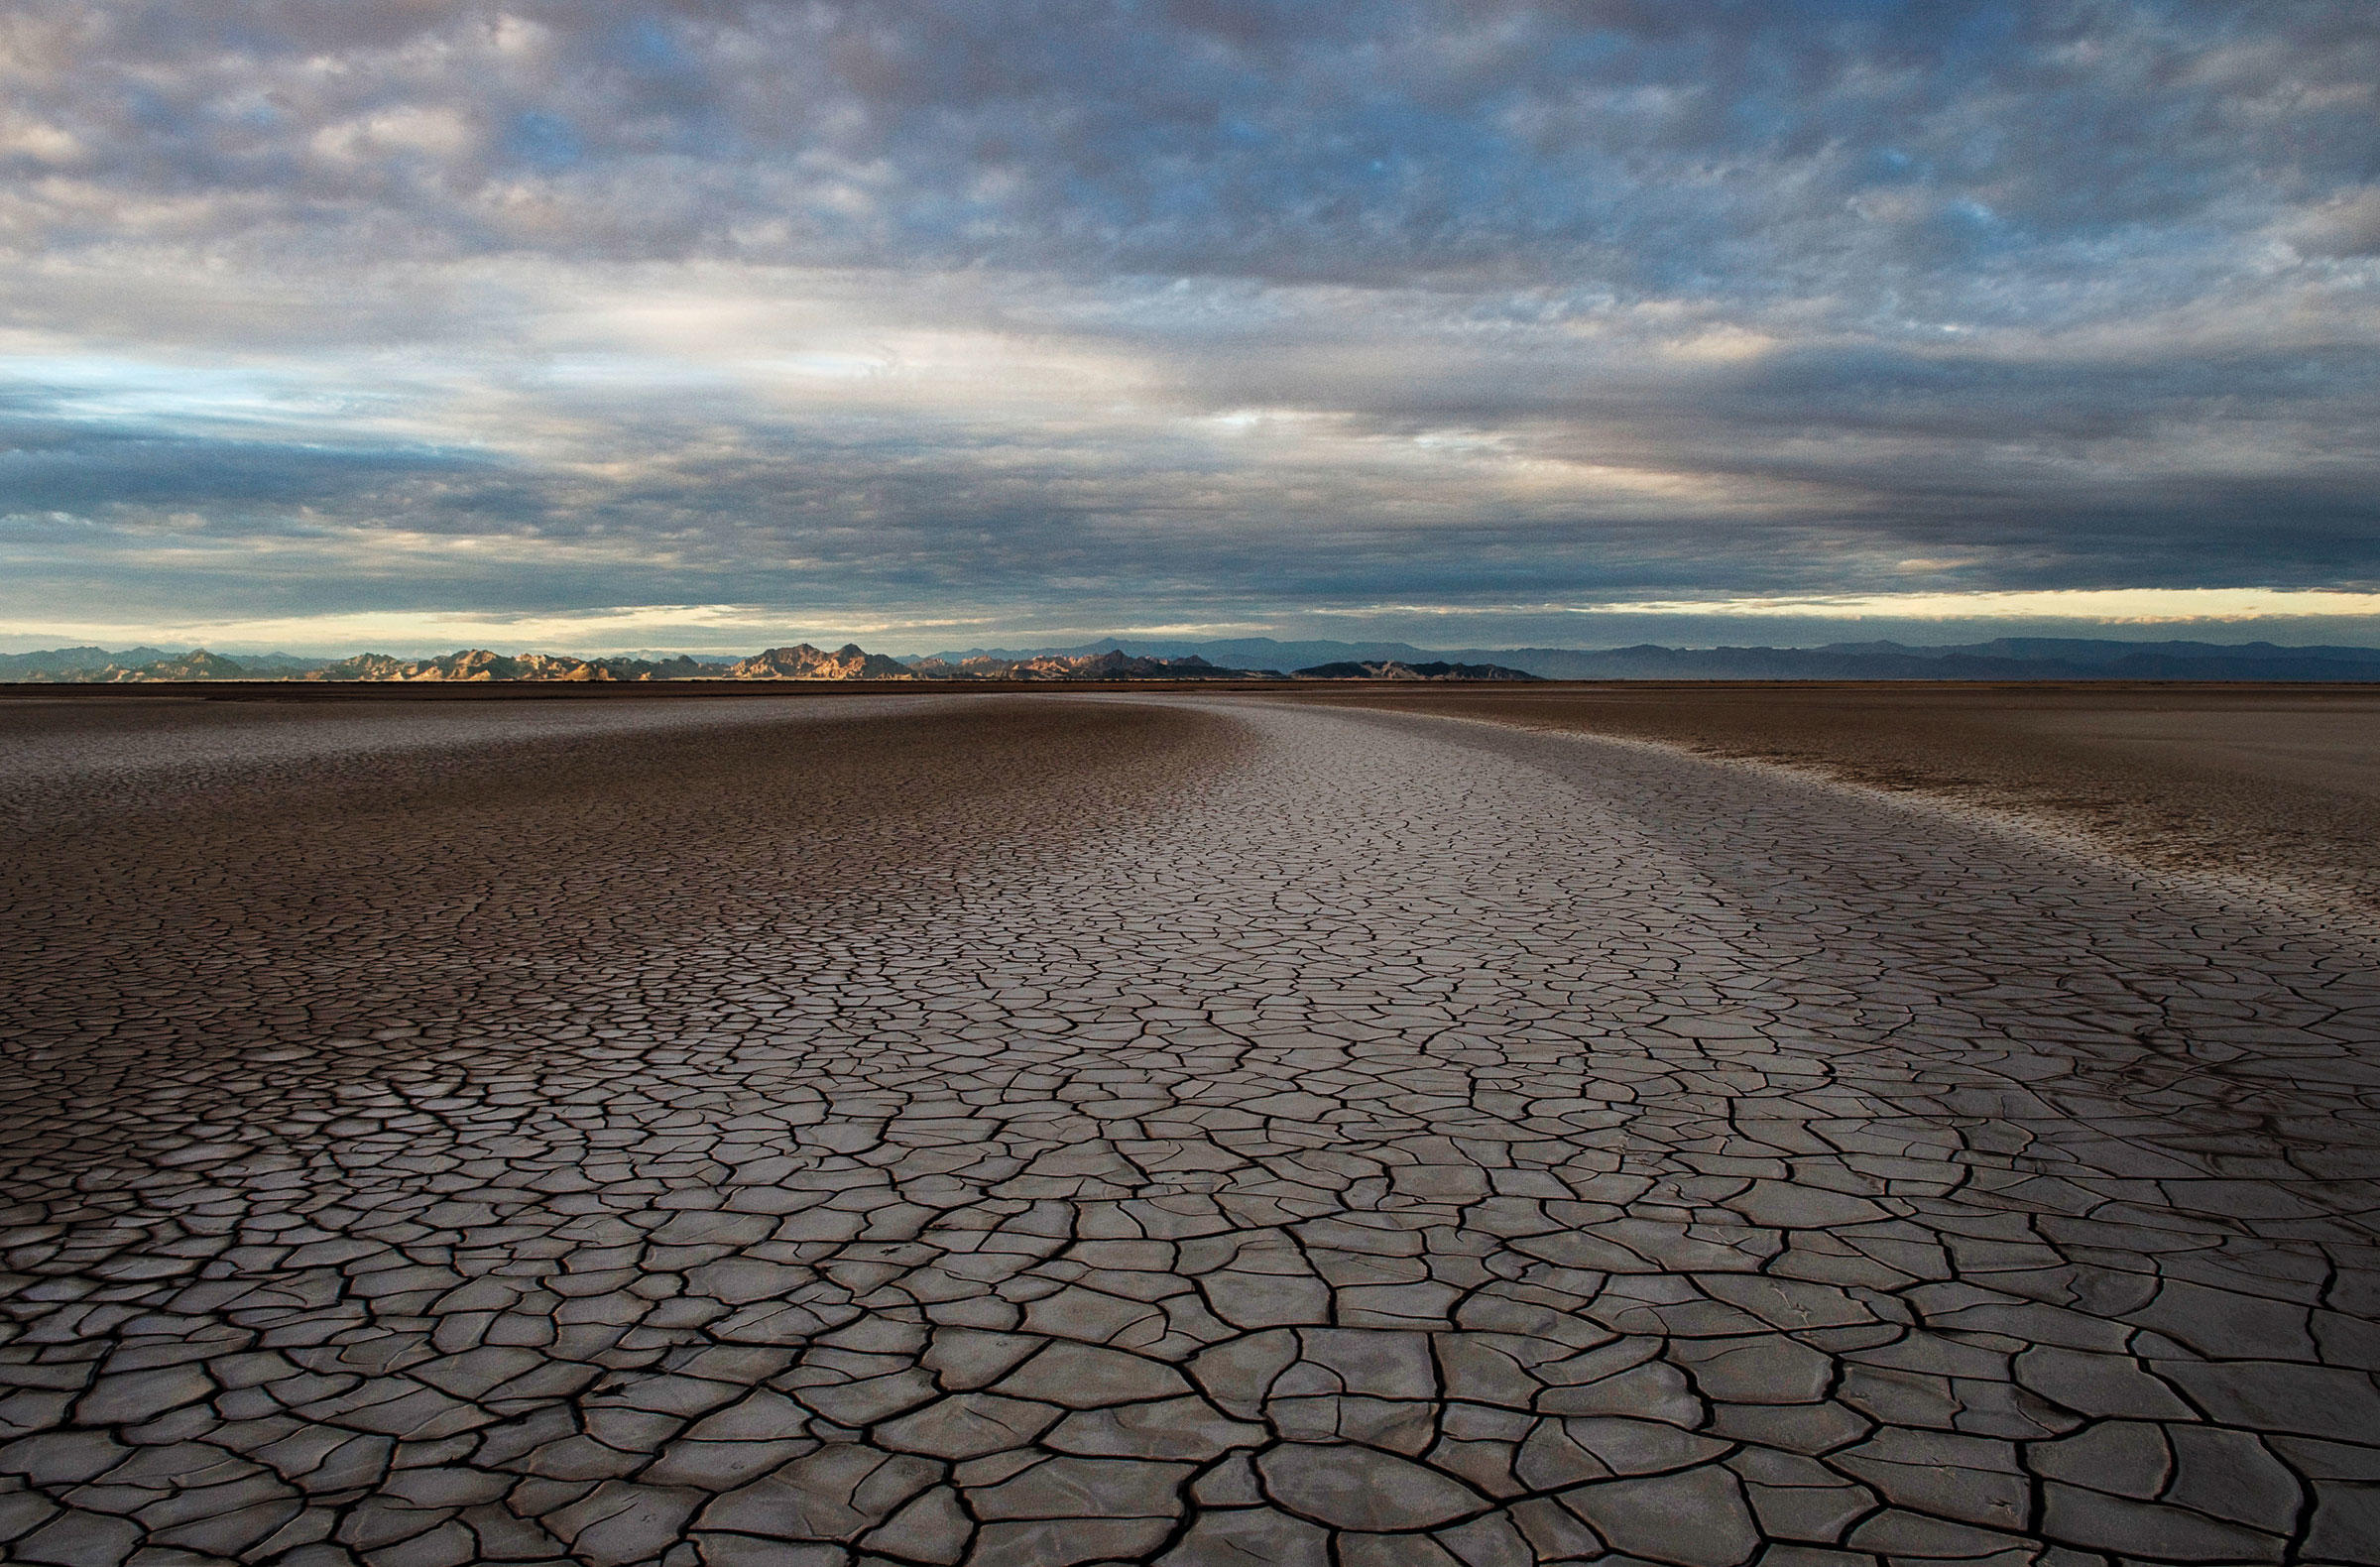 This spot, 50 miles south of the U.S.-Mexico border, was once part of the Colorado River Delta wetlands, which have been effectively eliminated by upriver dams. Pete McBride